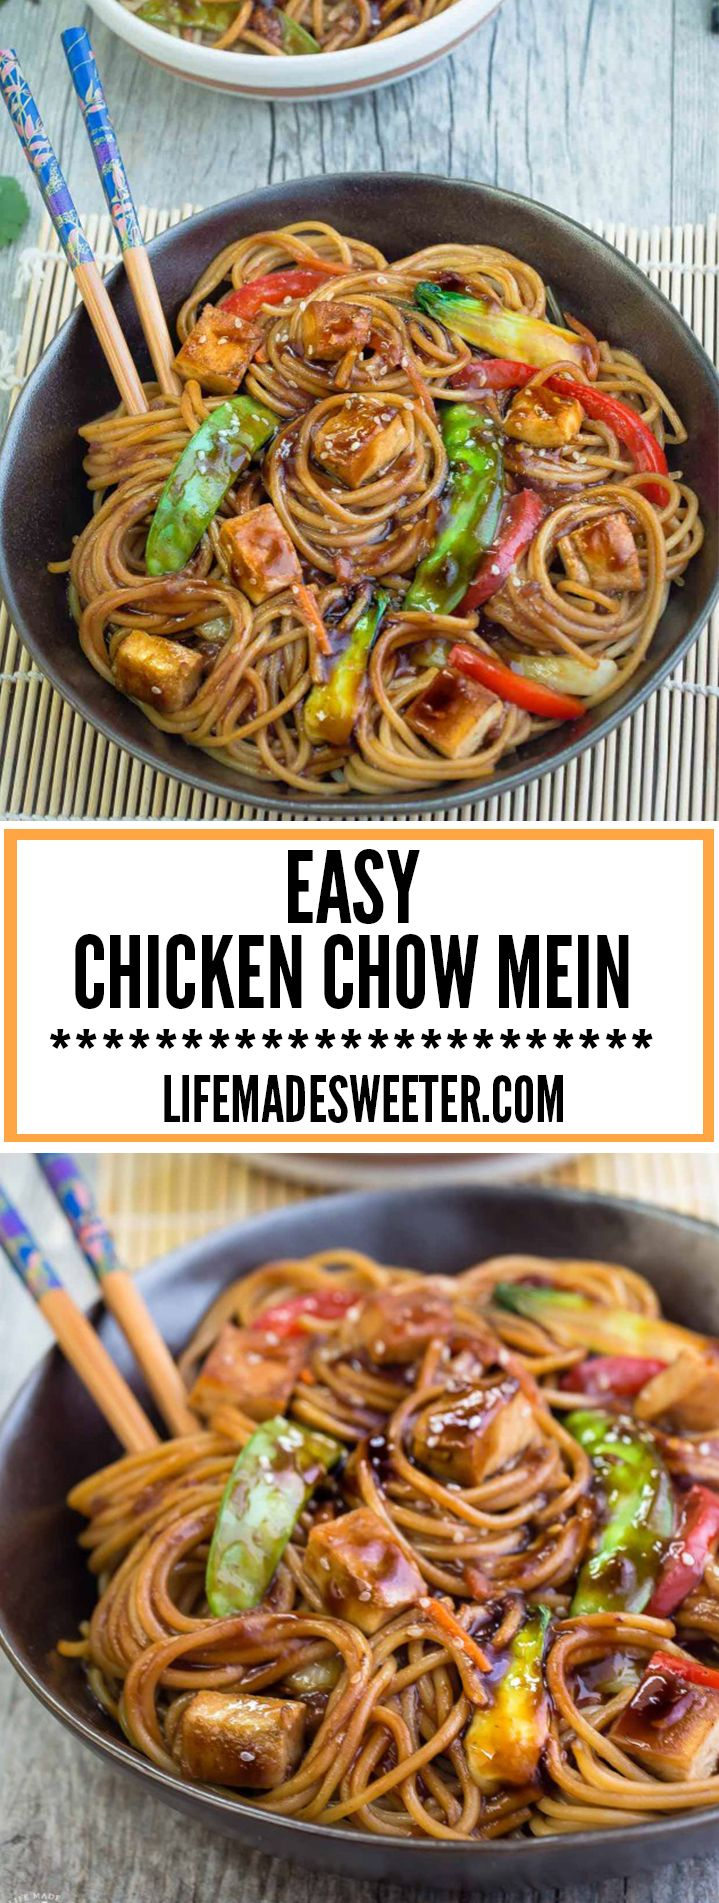 Easy Chicken Chow Mein is the perfect meal for busy weeknights. Best part of all, made all in ONE POT & comes together in just 30 minutes with authentic flavors - SO much better and healthier than takeout!